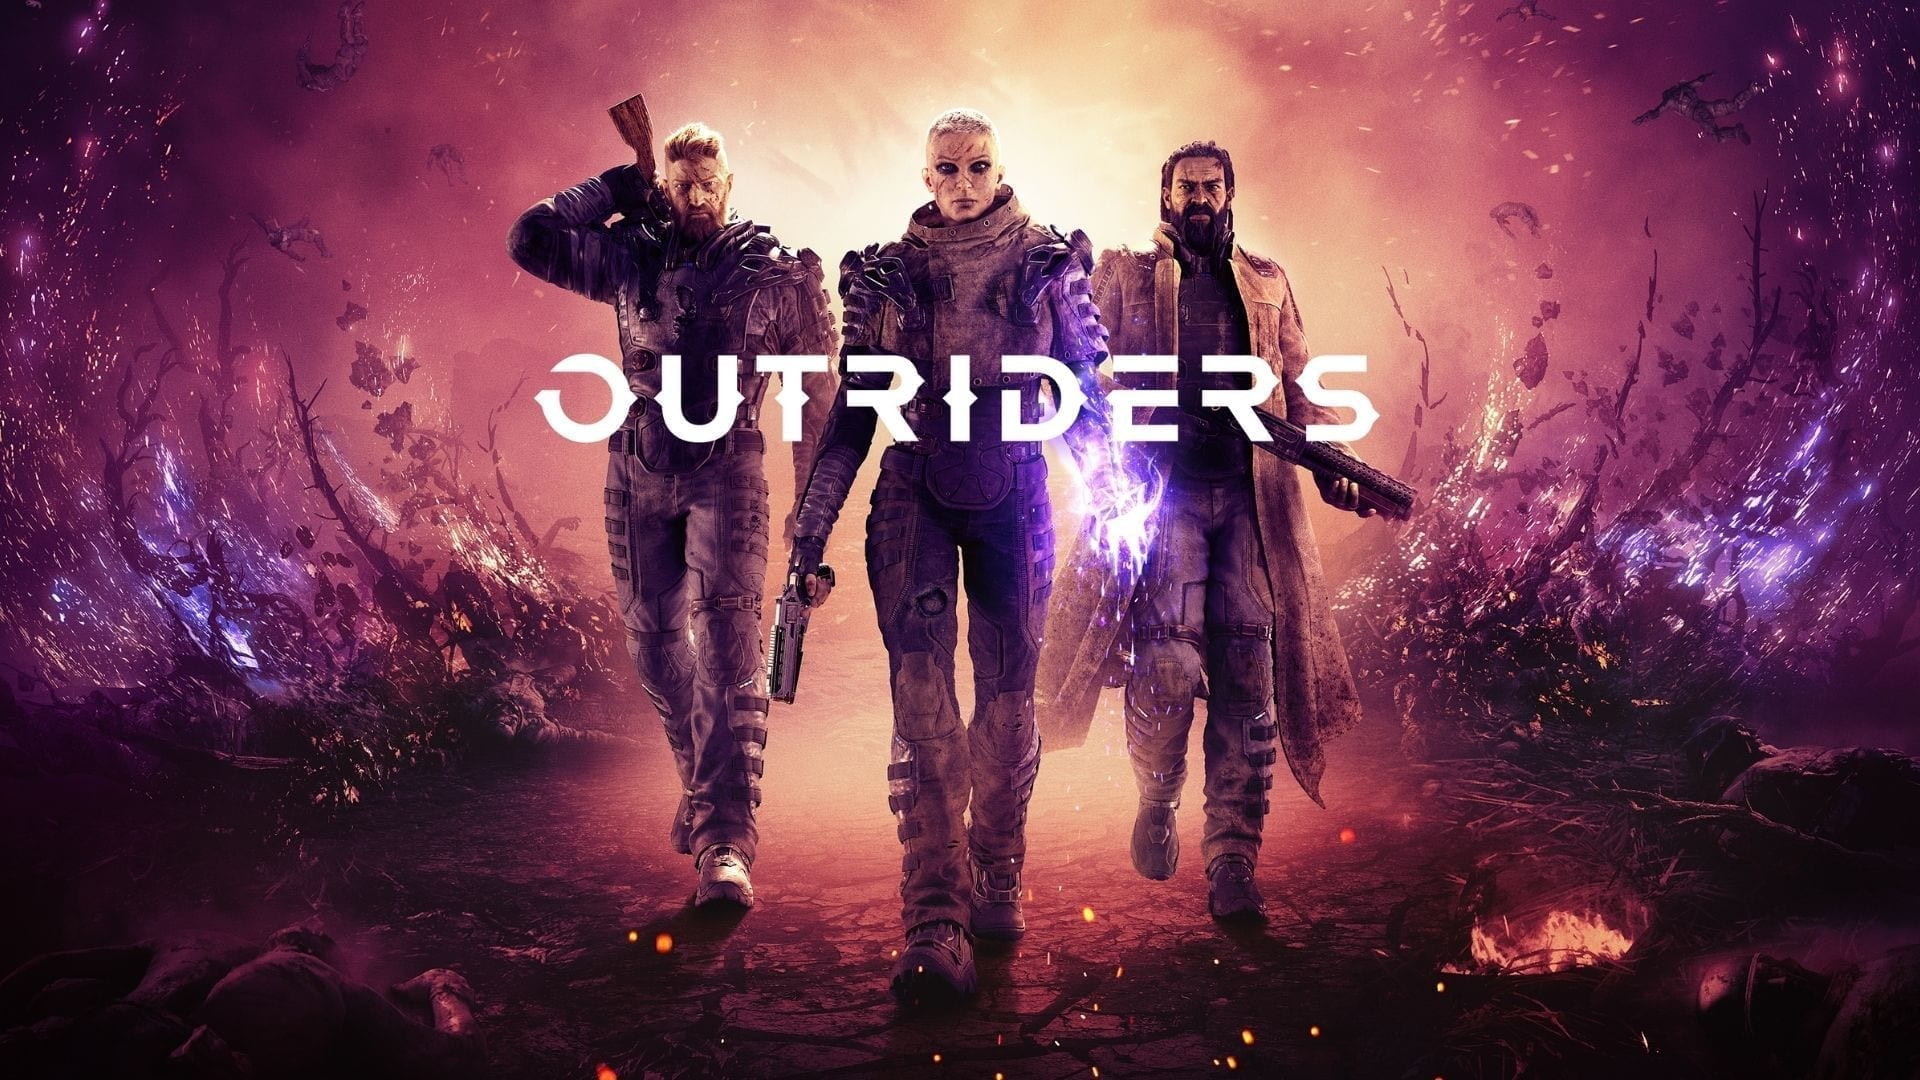 Outriders 1